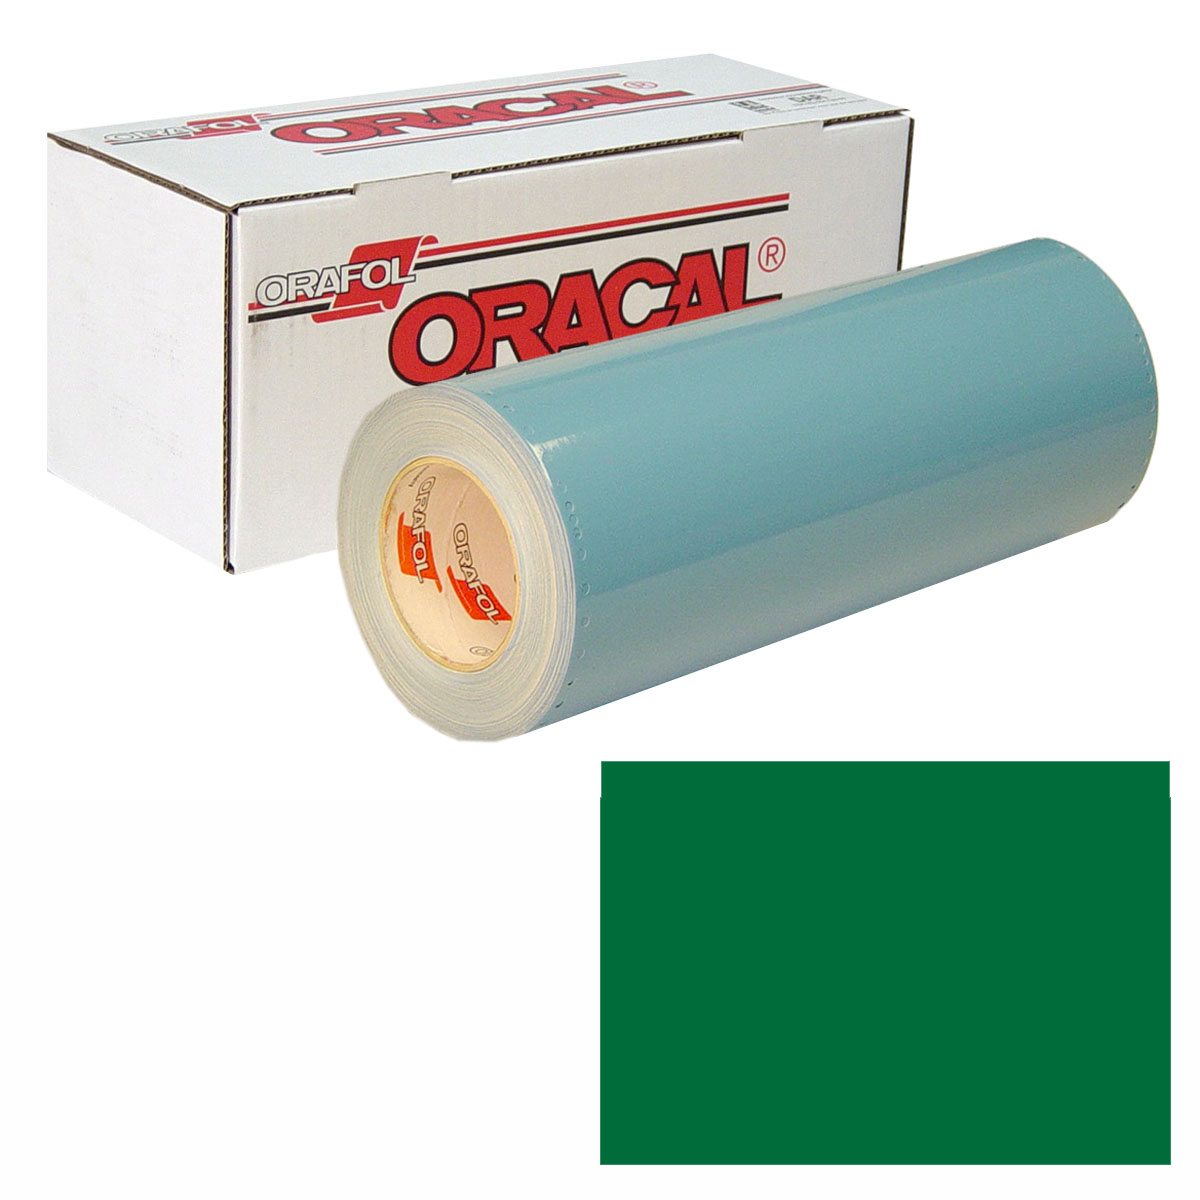 ORACAL 751 Unp 24In X 10Yd 617 Emerald